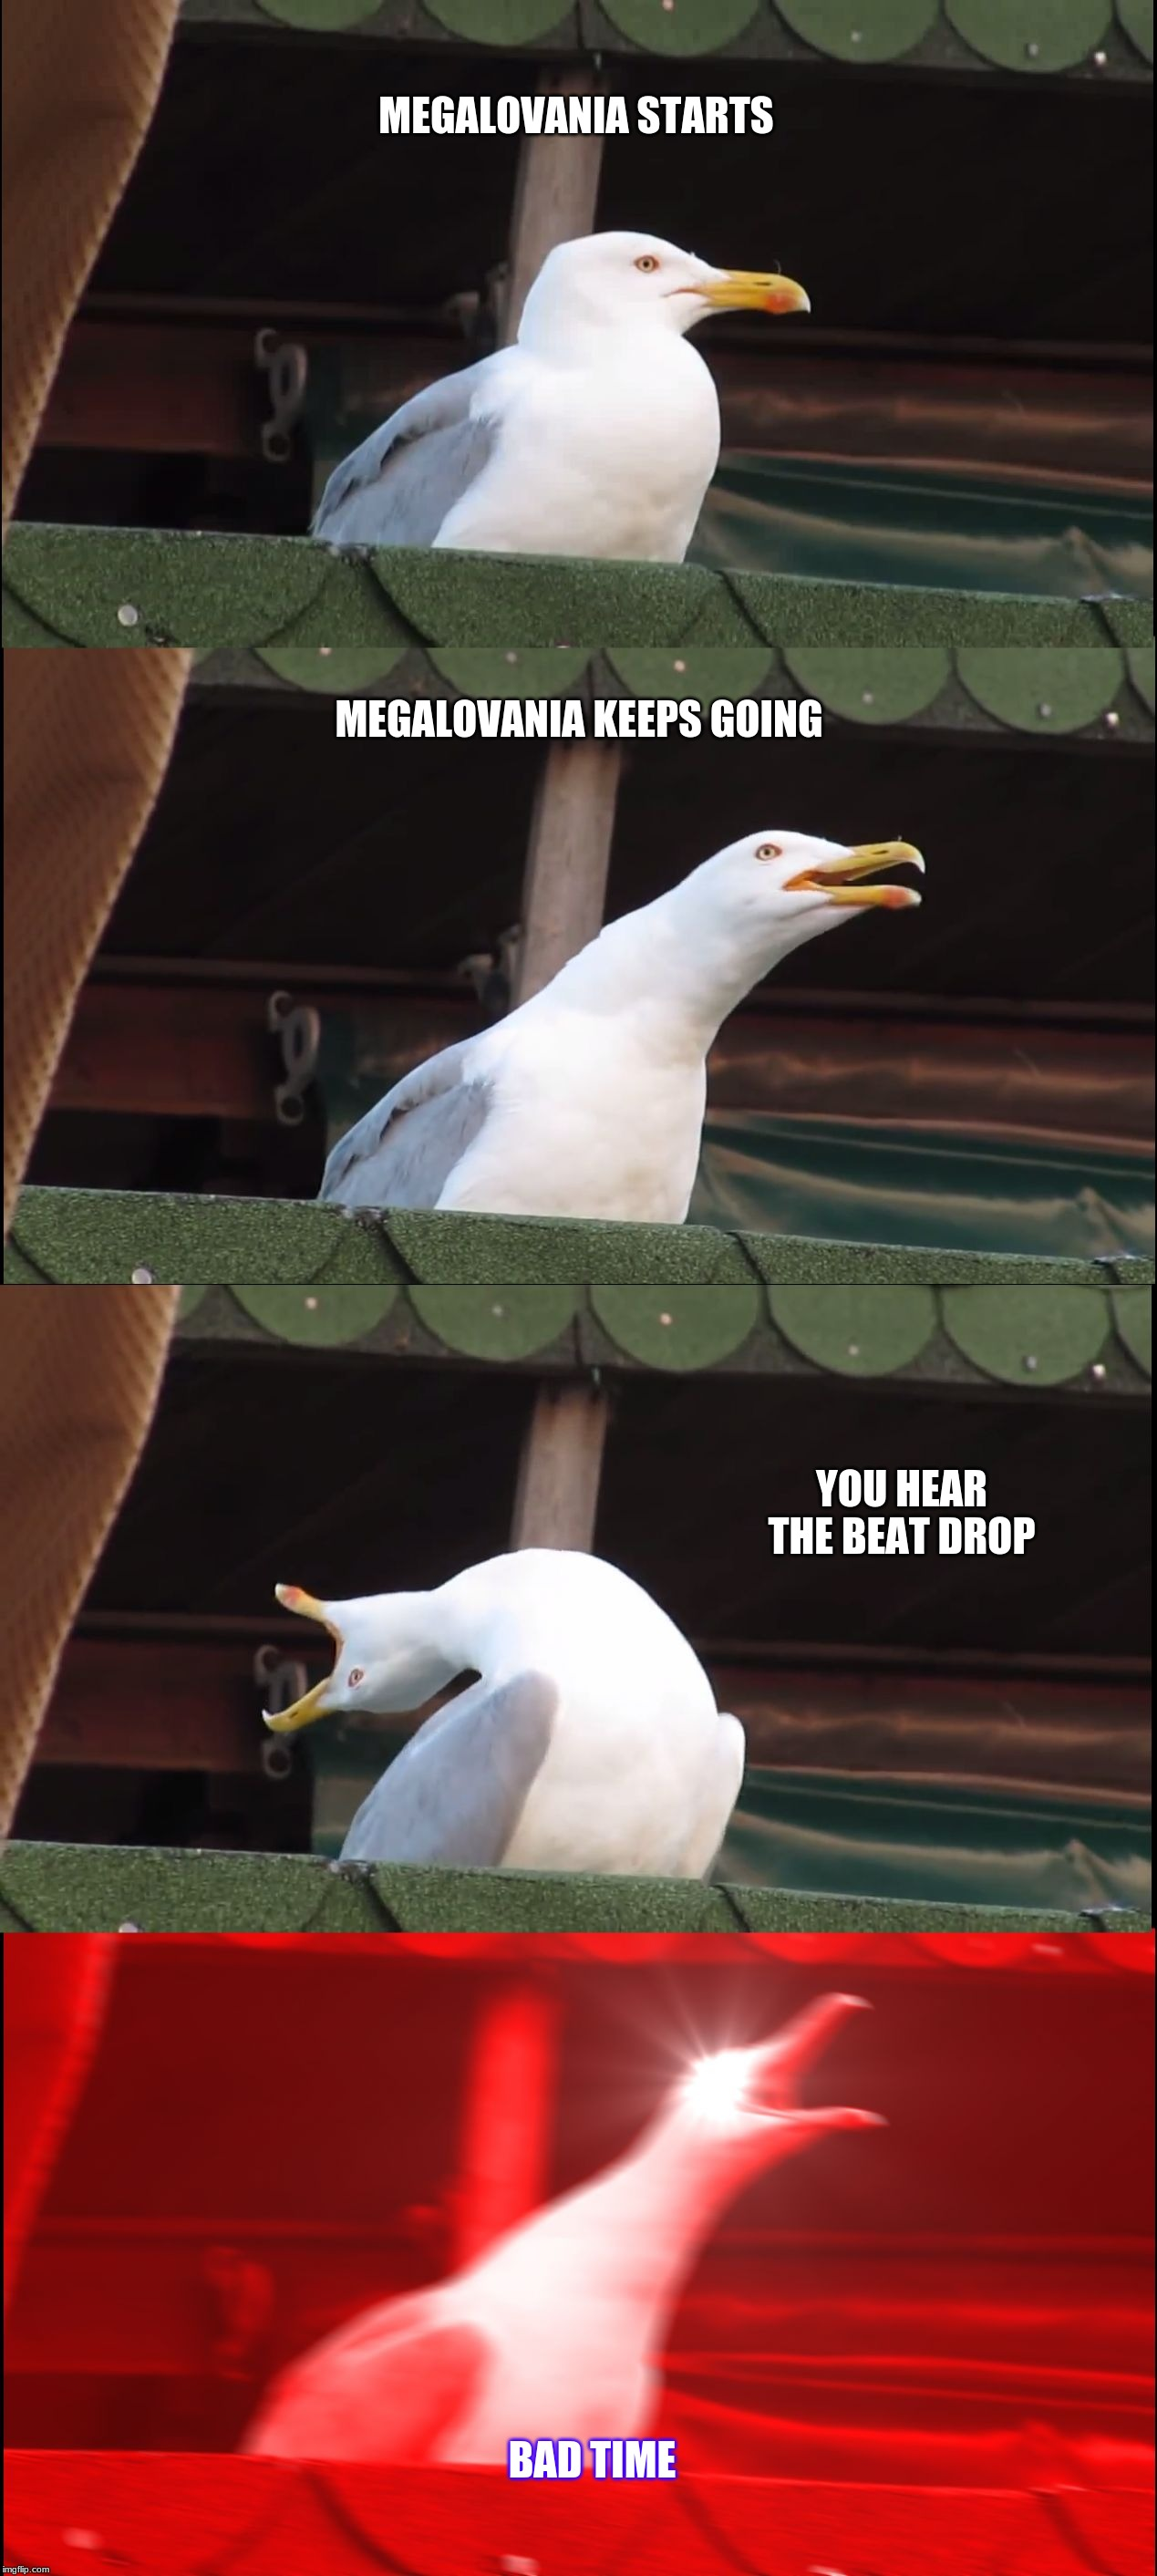 MEGALOVANIA STARTS MEGALOVANIA KEEPS GOING YOU HEAR THE BEAT DROP BAD TIME | image tagged in memes,inhaling seagull | made w/ Imgflip meme maker